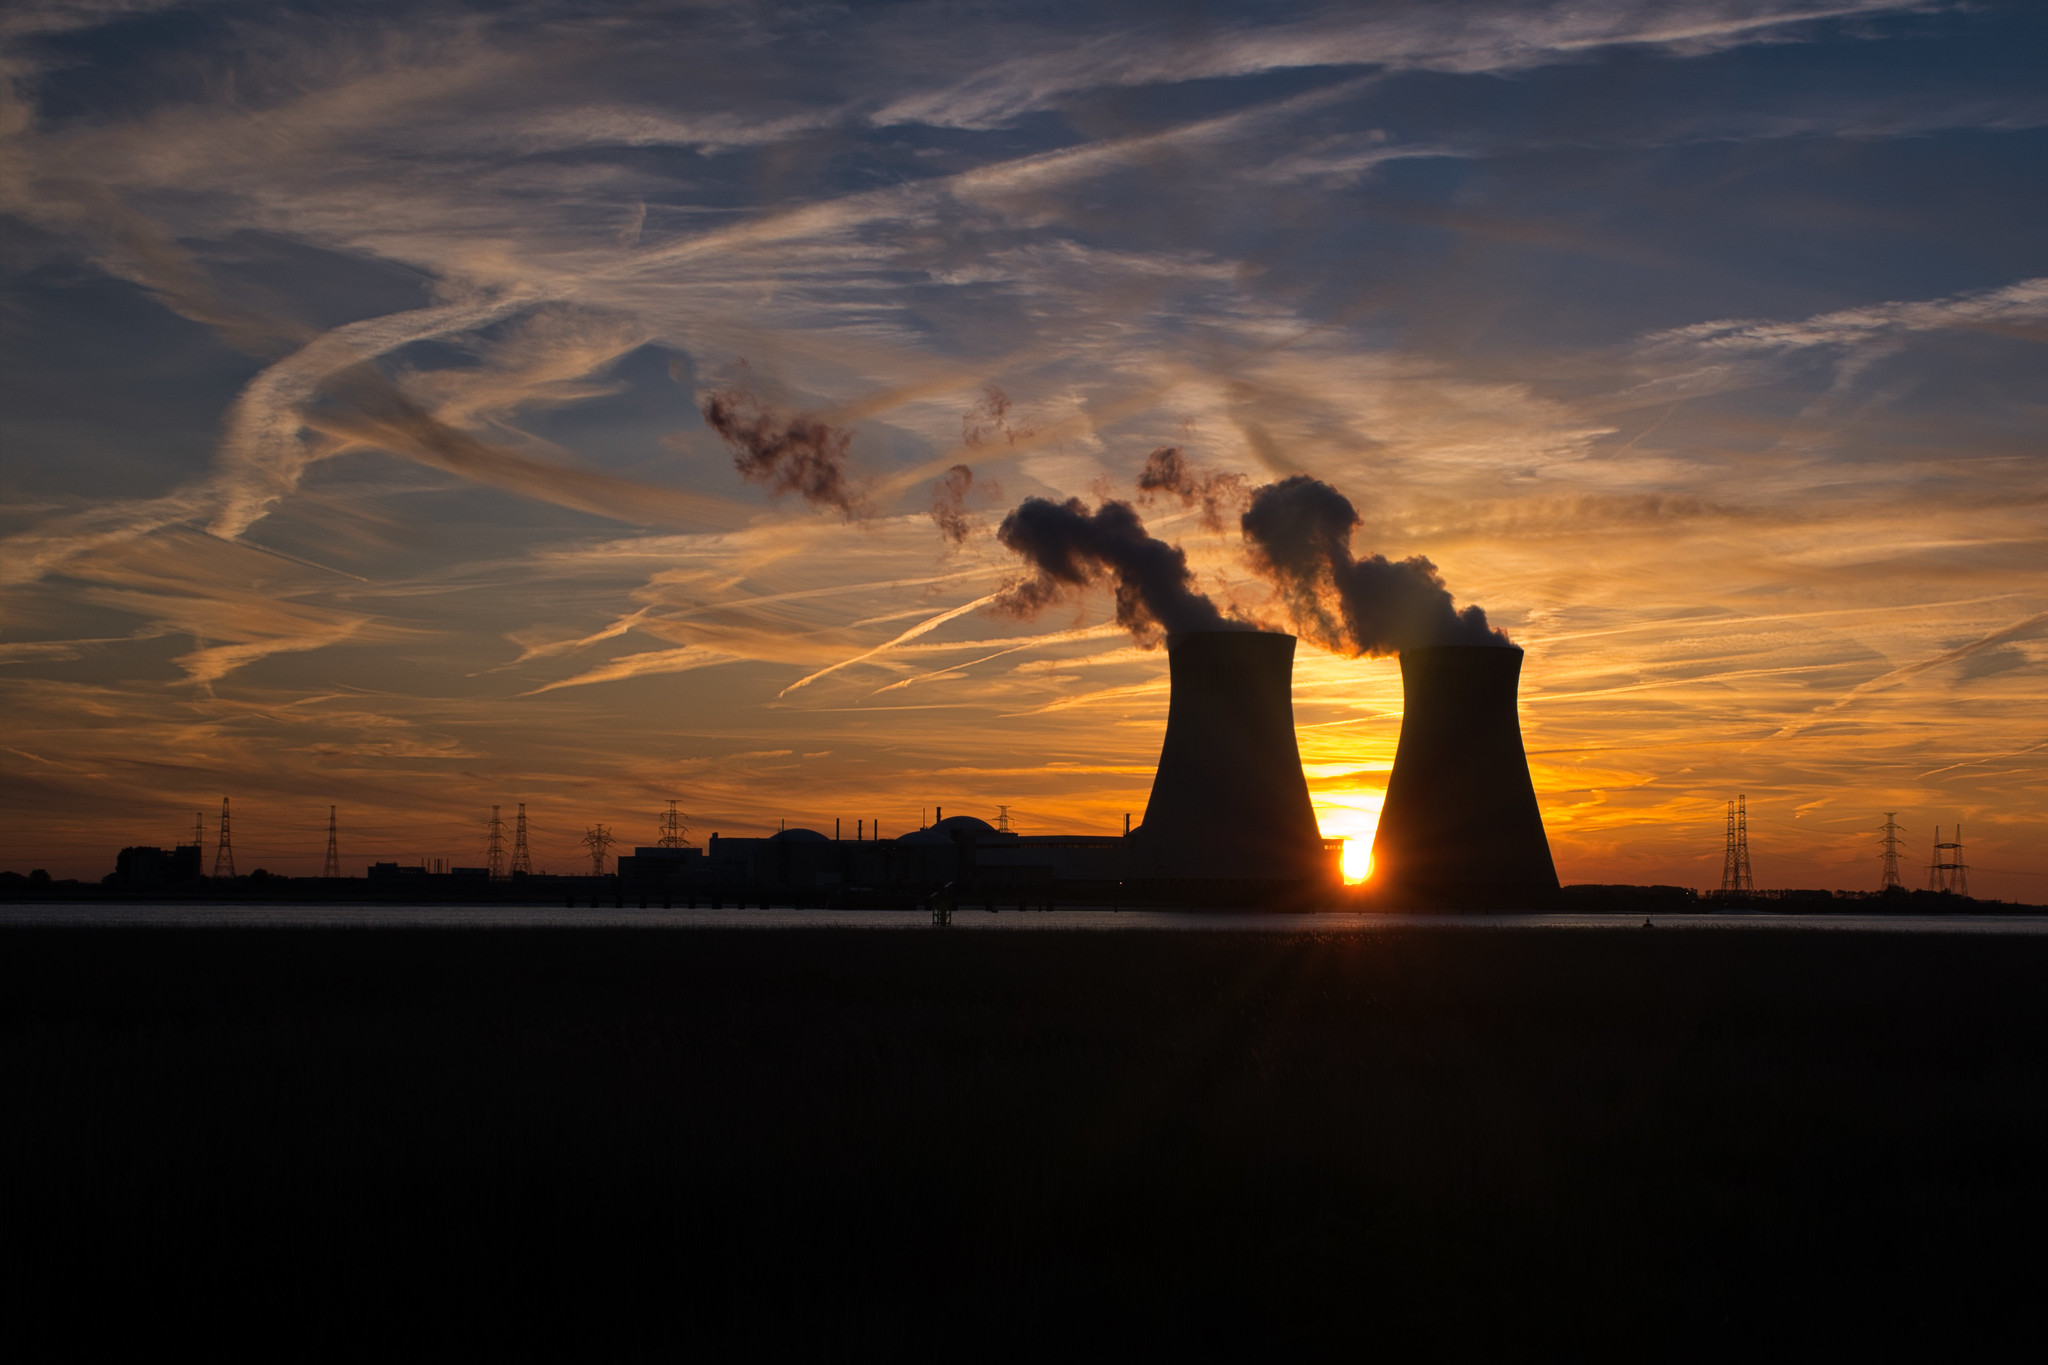 Nuclear Silhouette